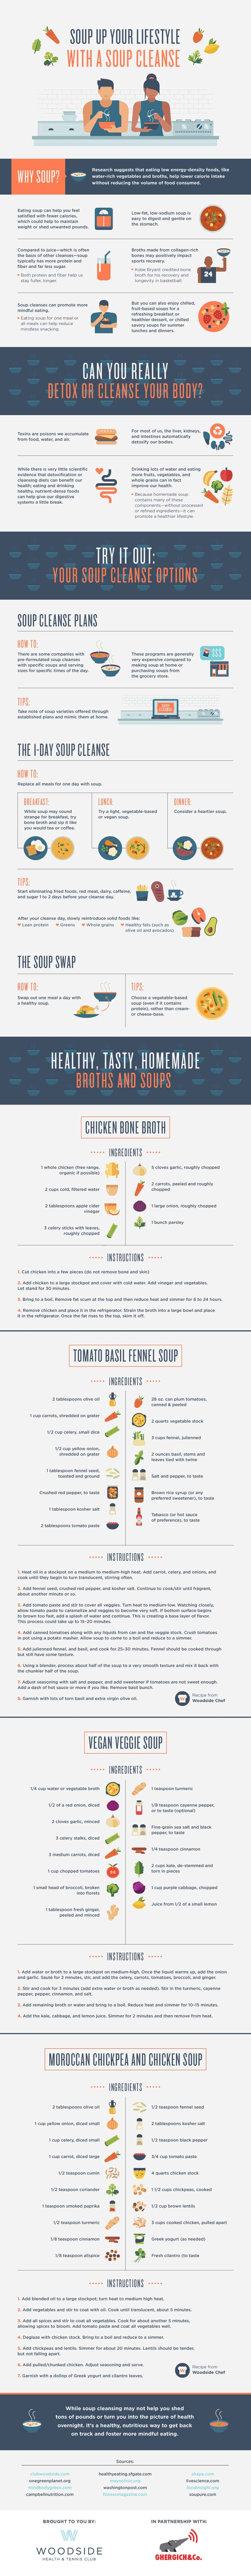 Soup Up Your Lifestyle with a Soup Cleanse